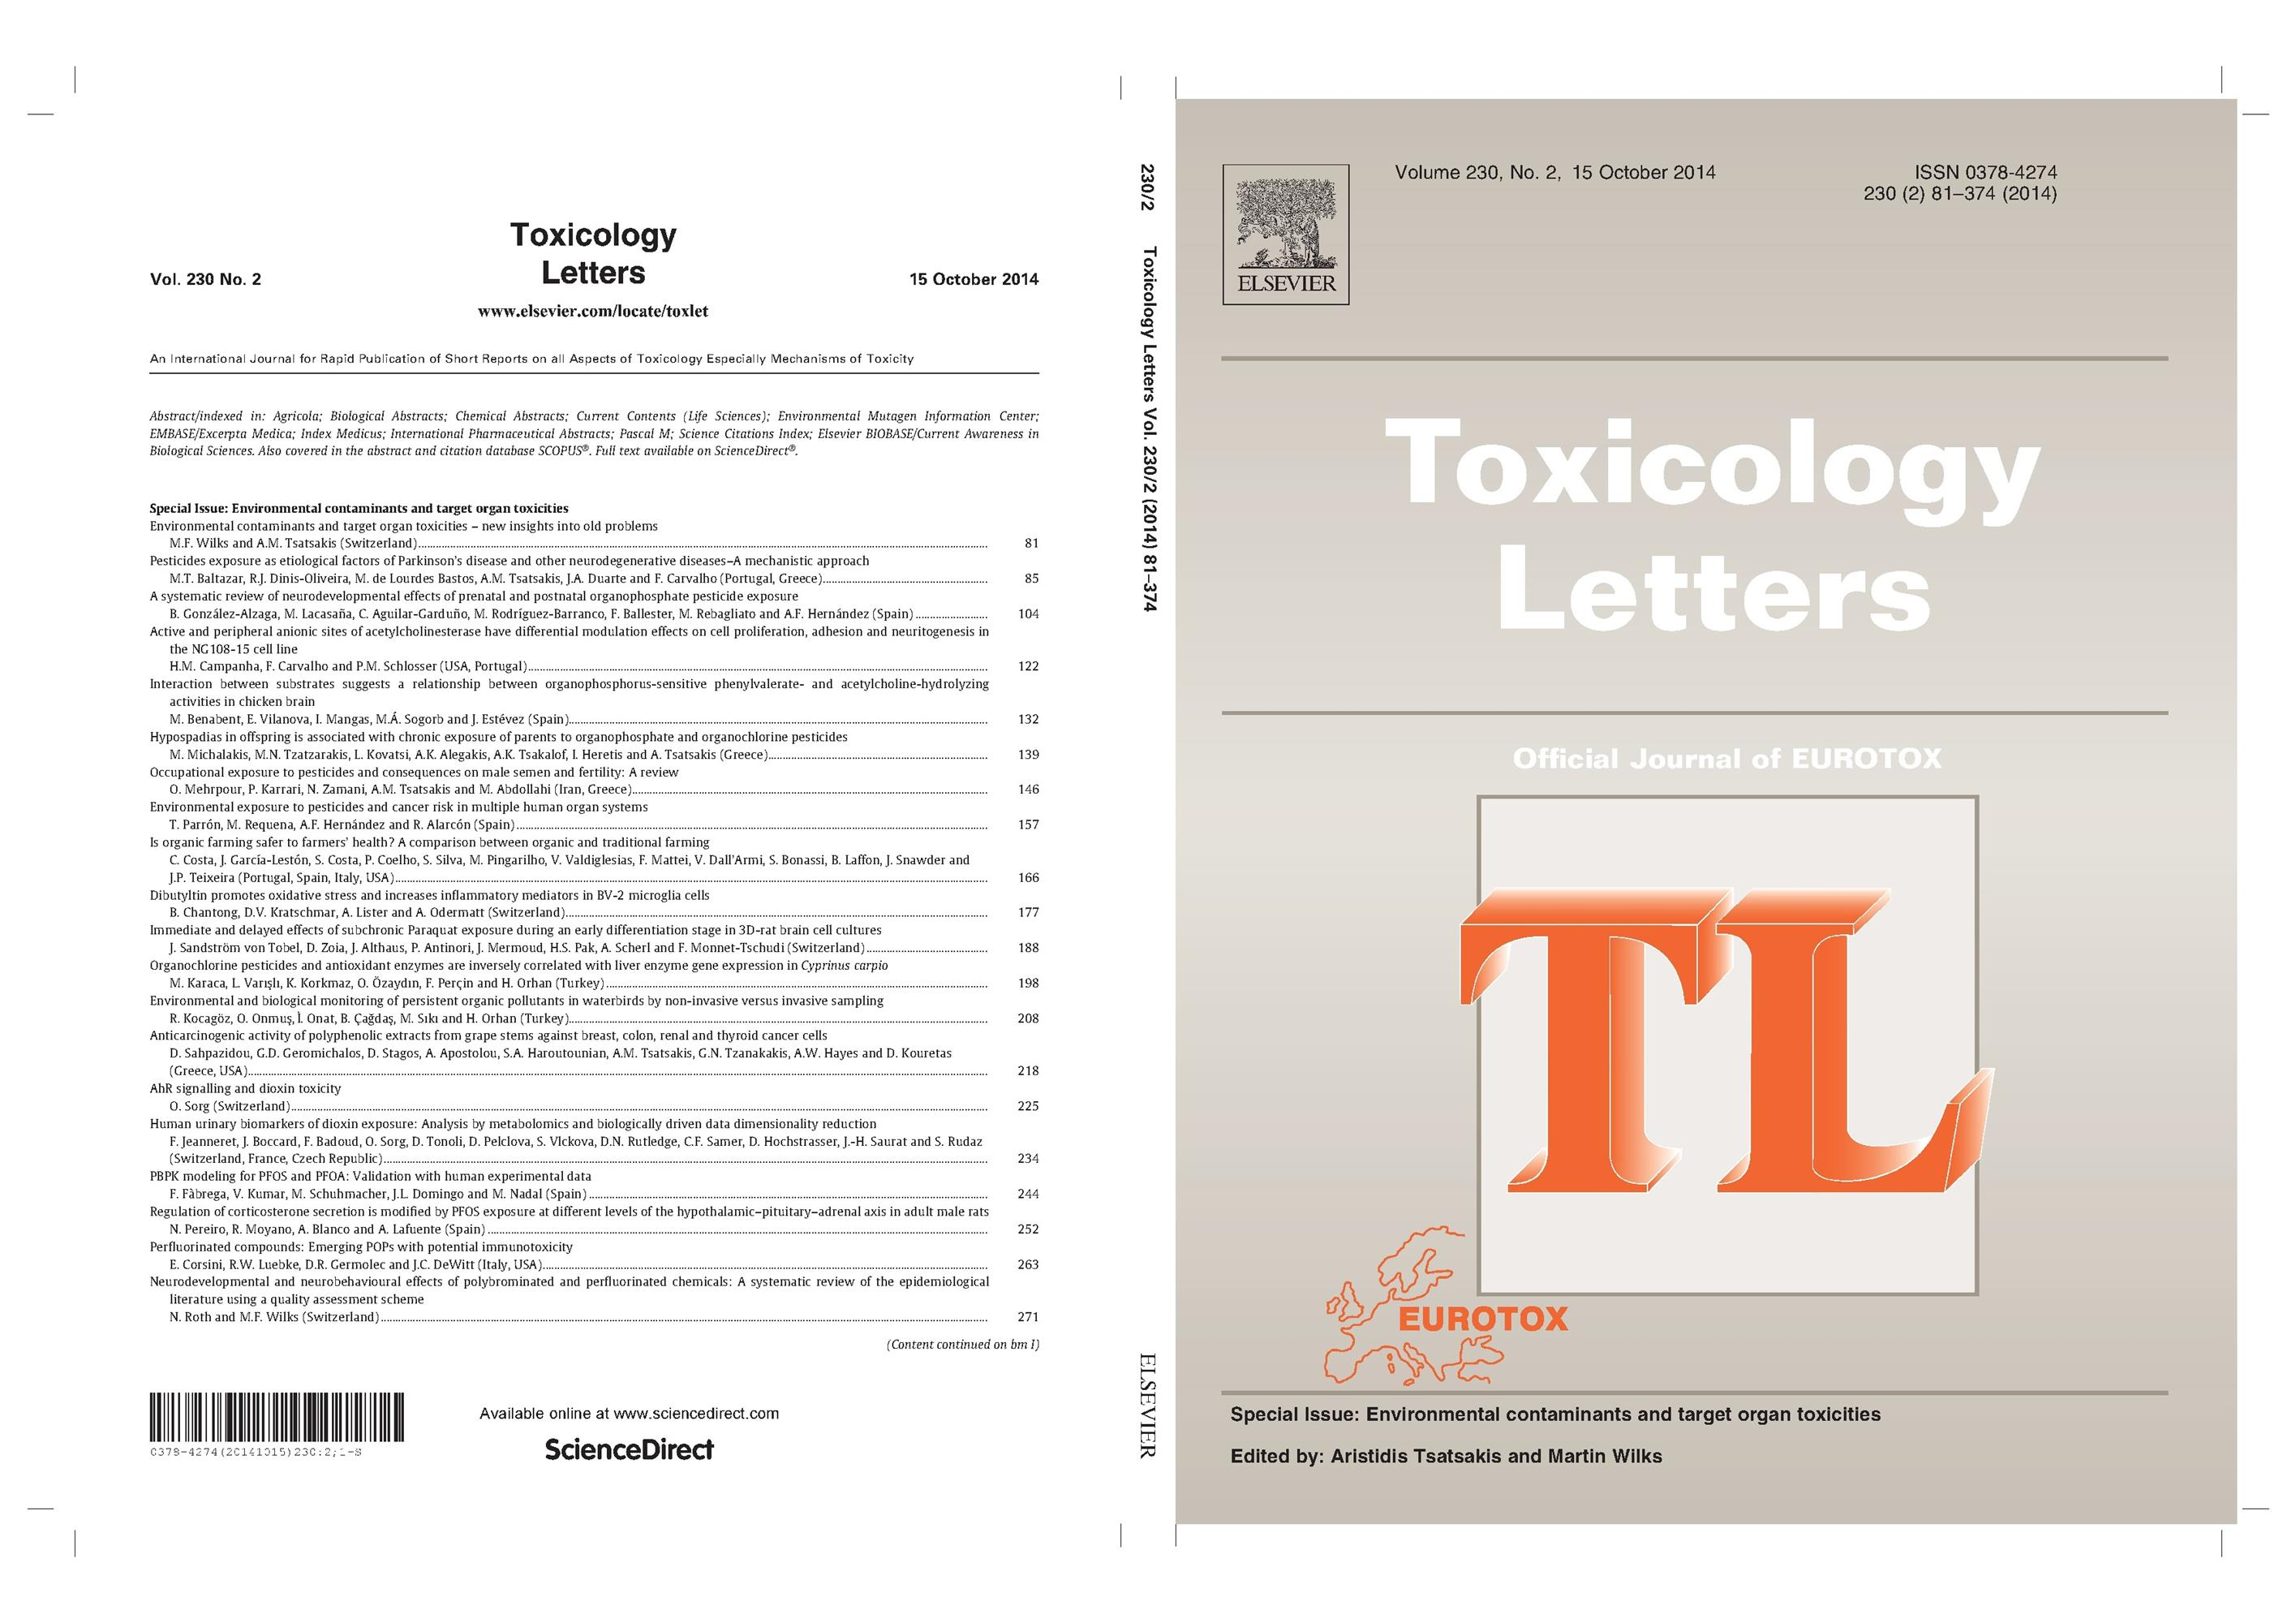 Special Issue Environmental contaminants and target organ toxicities